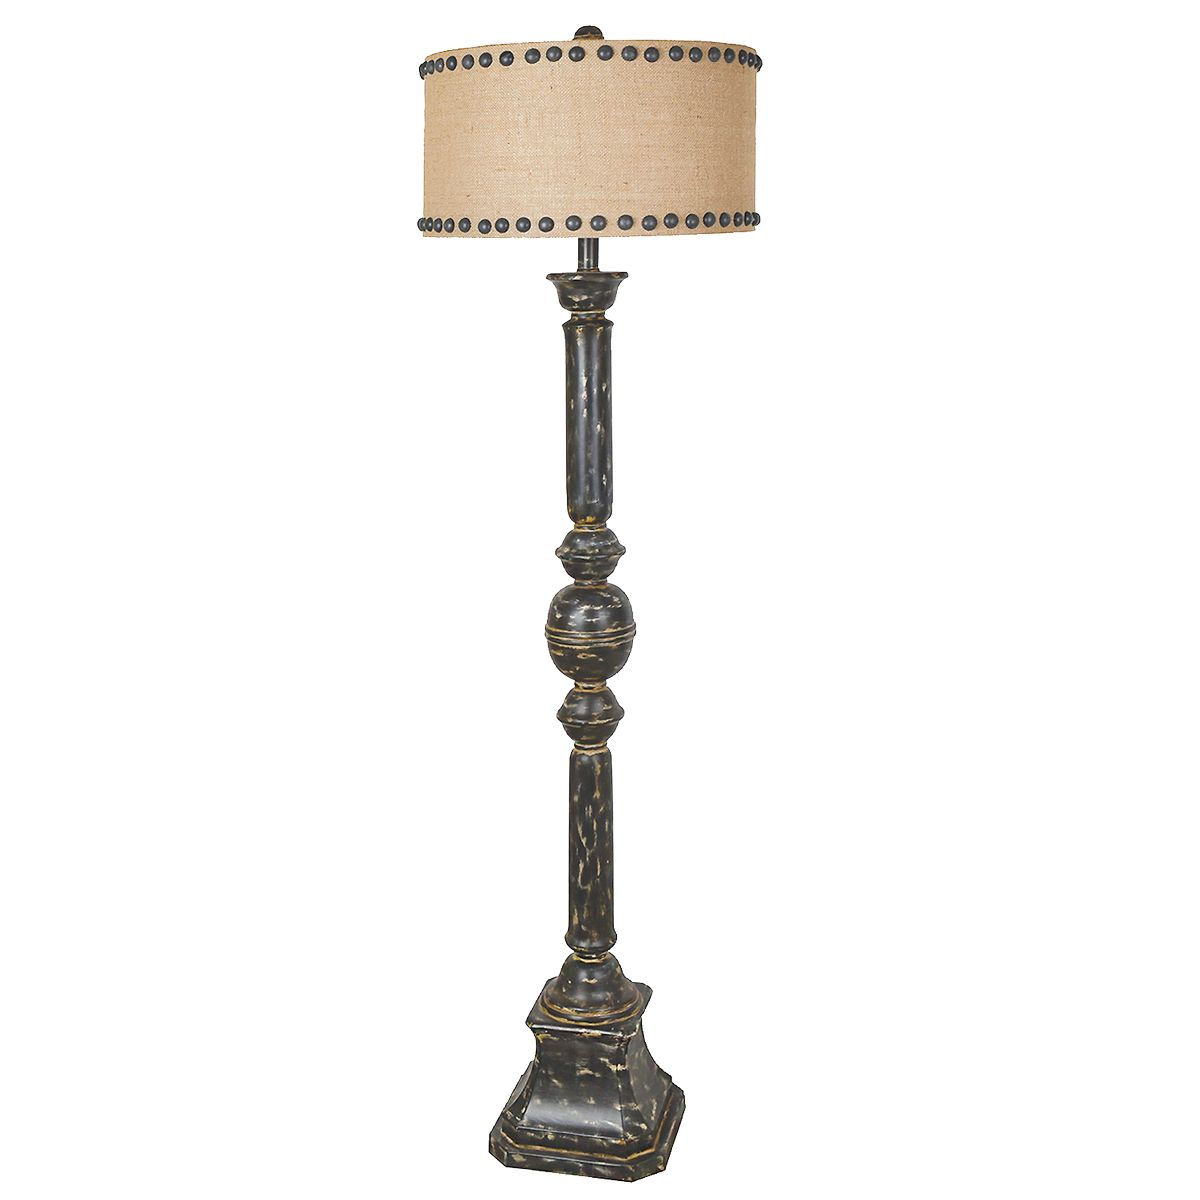 Iron Baluster Floor Lamp - OVERSTOCK